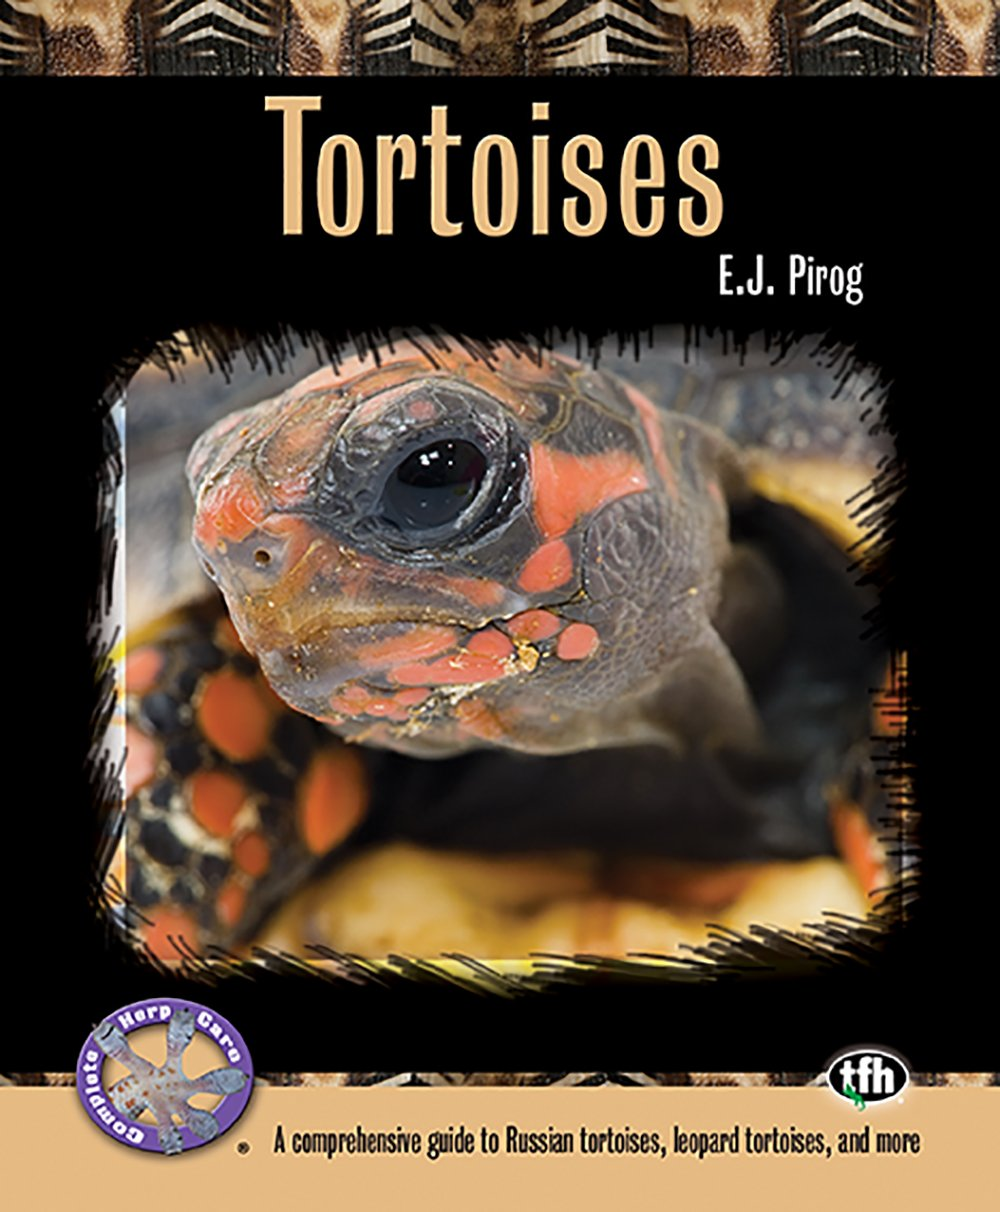 Check Out TortoisesProducts On Amazon!